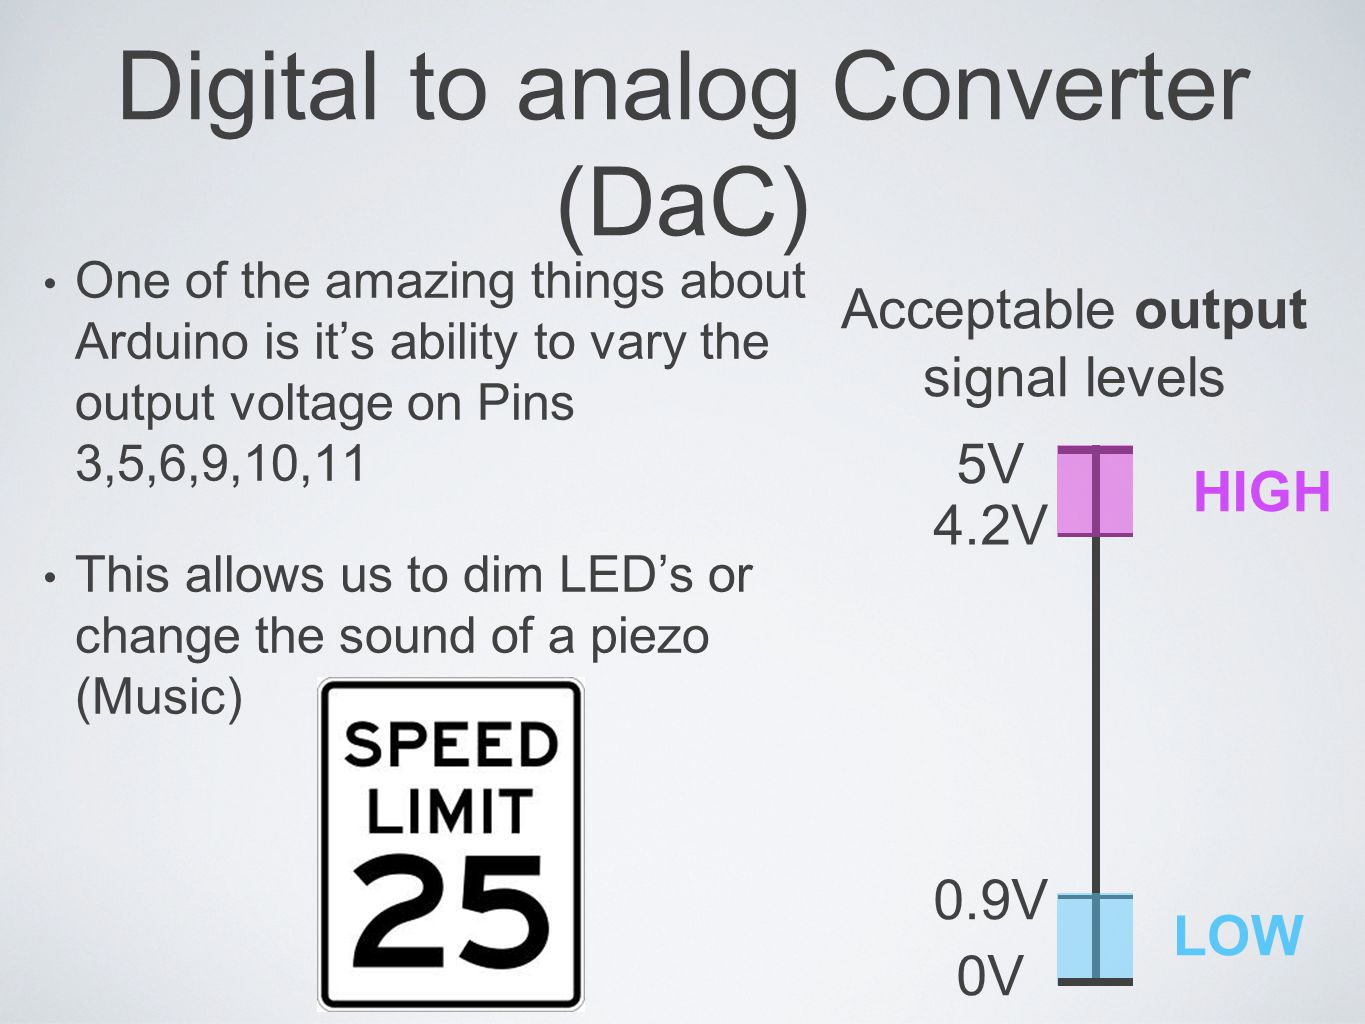 Digital to analog Converter (DaC) One of the amazing things about Arduino is it's ability to vary the output voltage on Pins 3,5,6,9,10,11 This allows